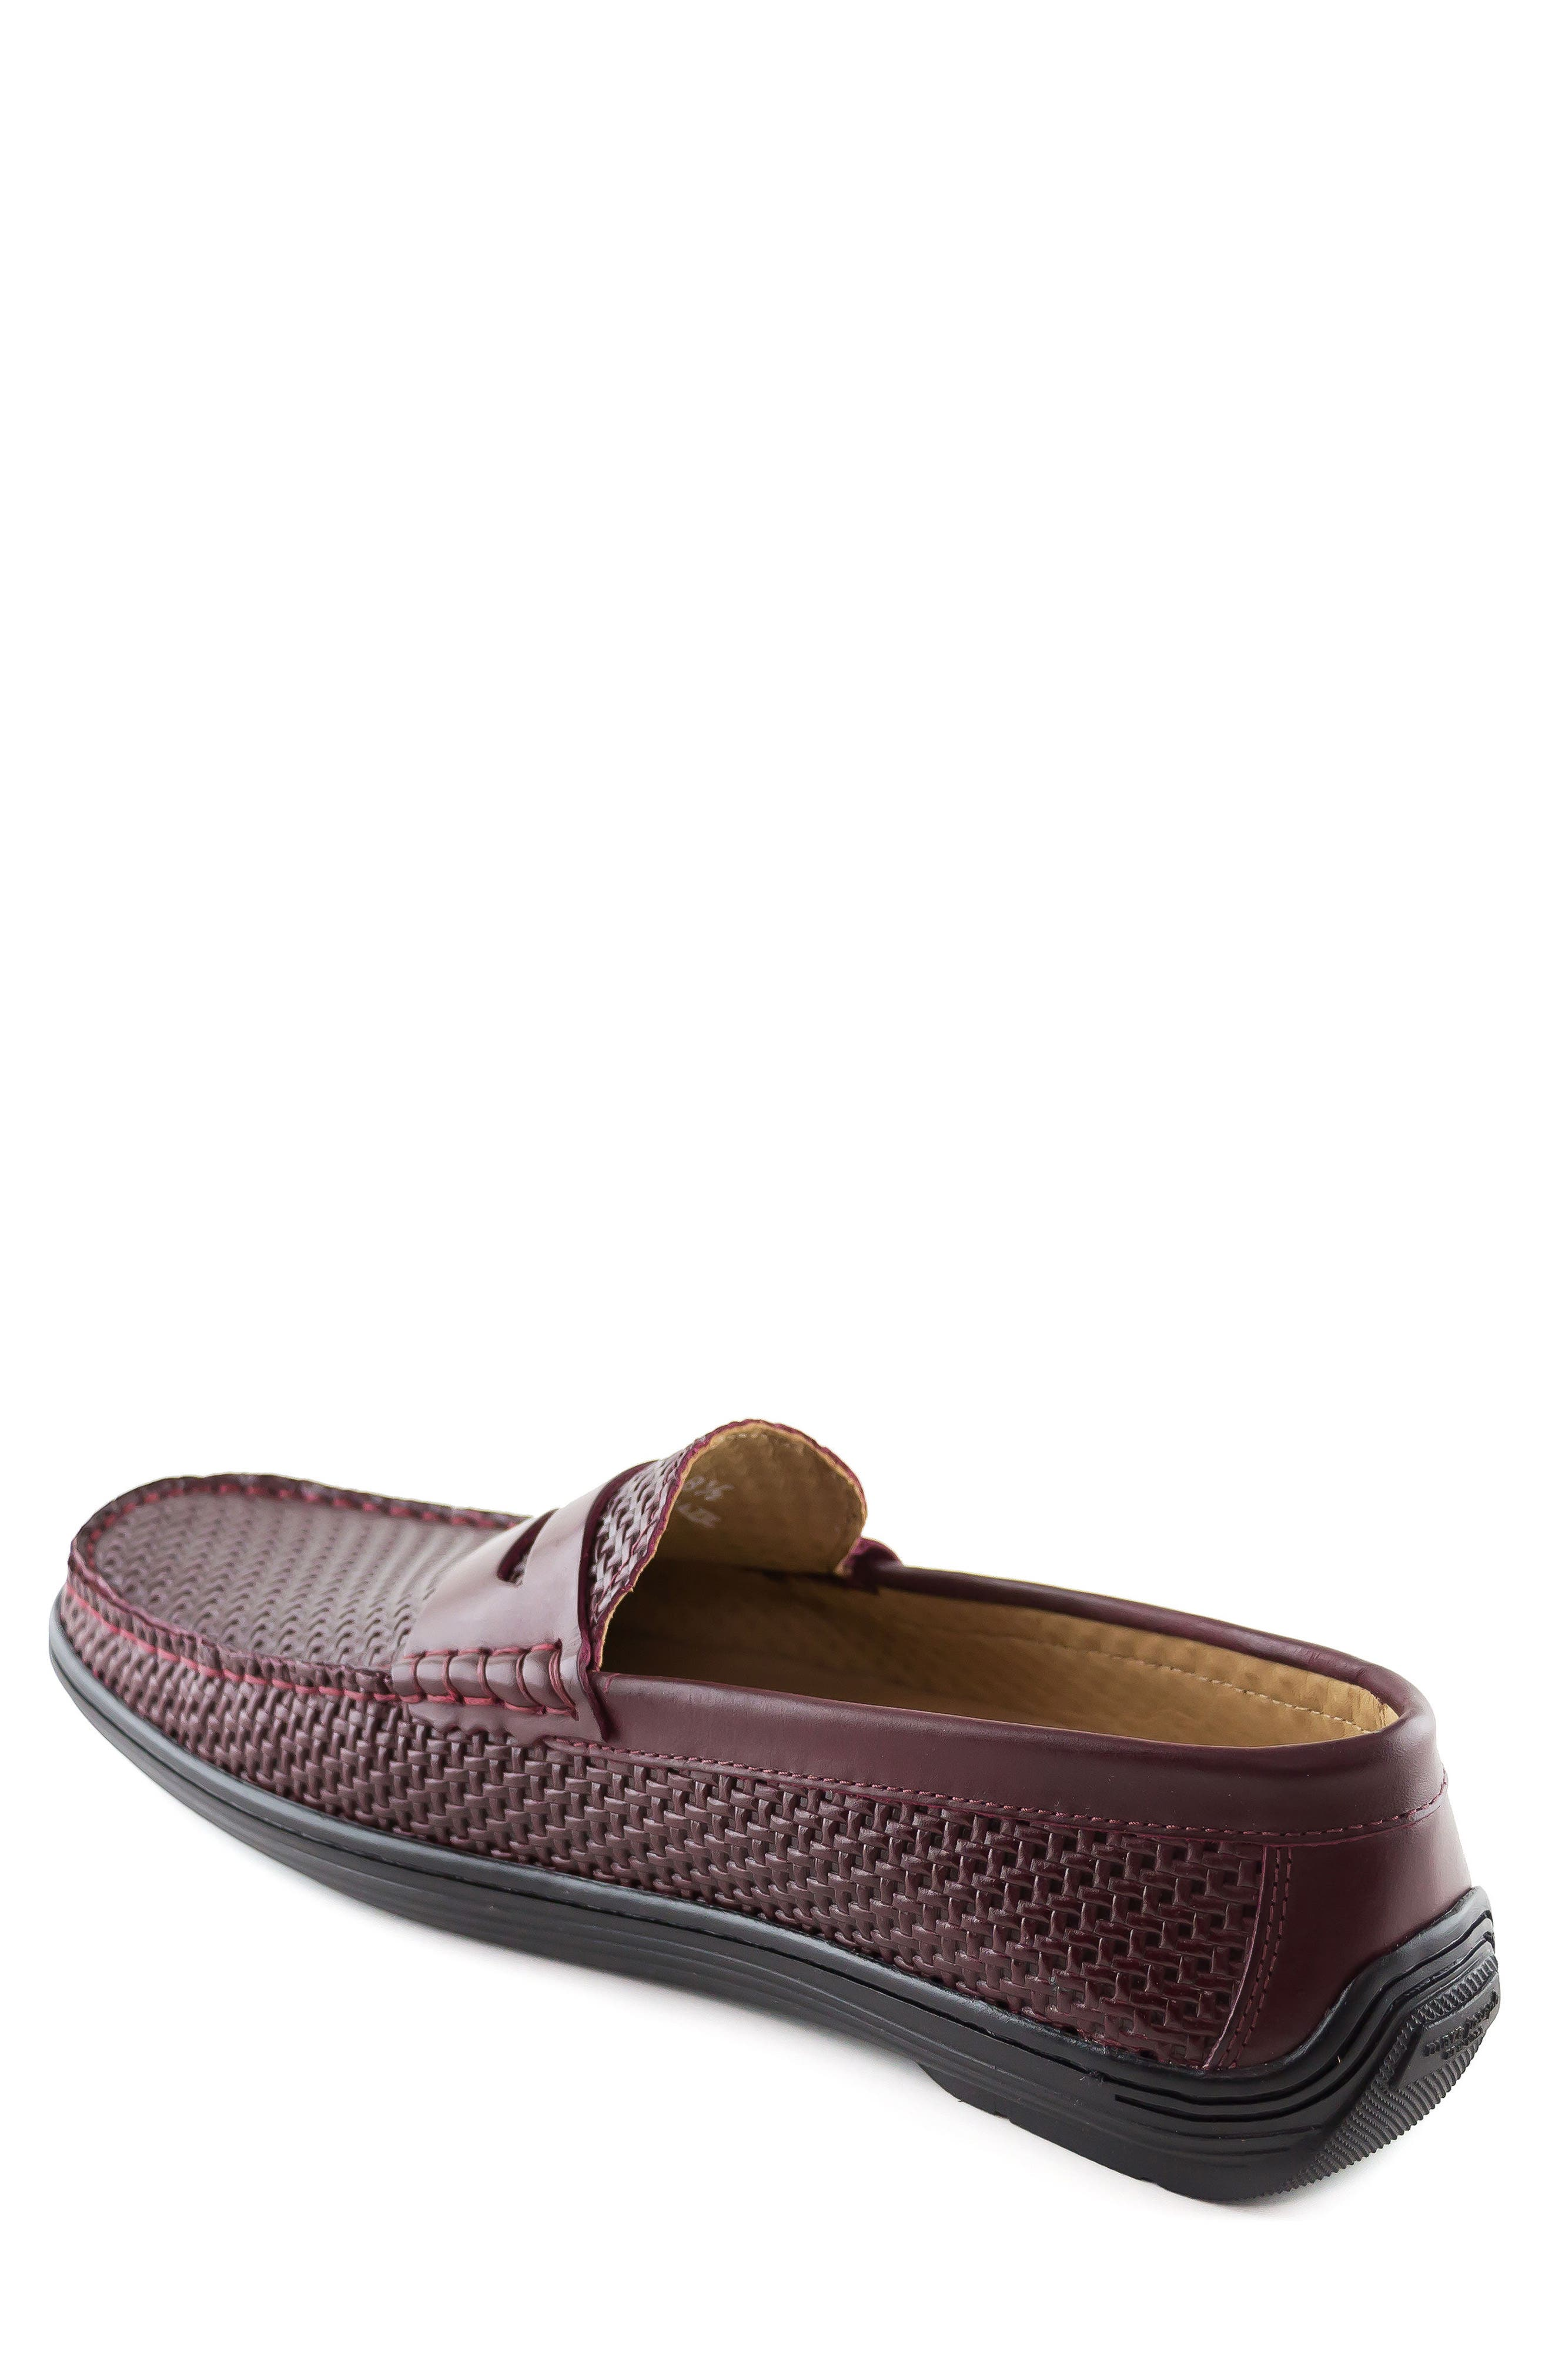 Atlantic Penny Loafer,                             Alternate thumbnail 14, color,